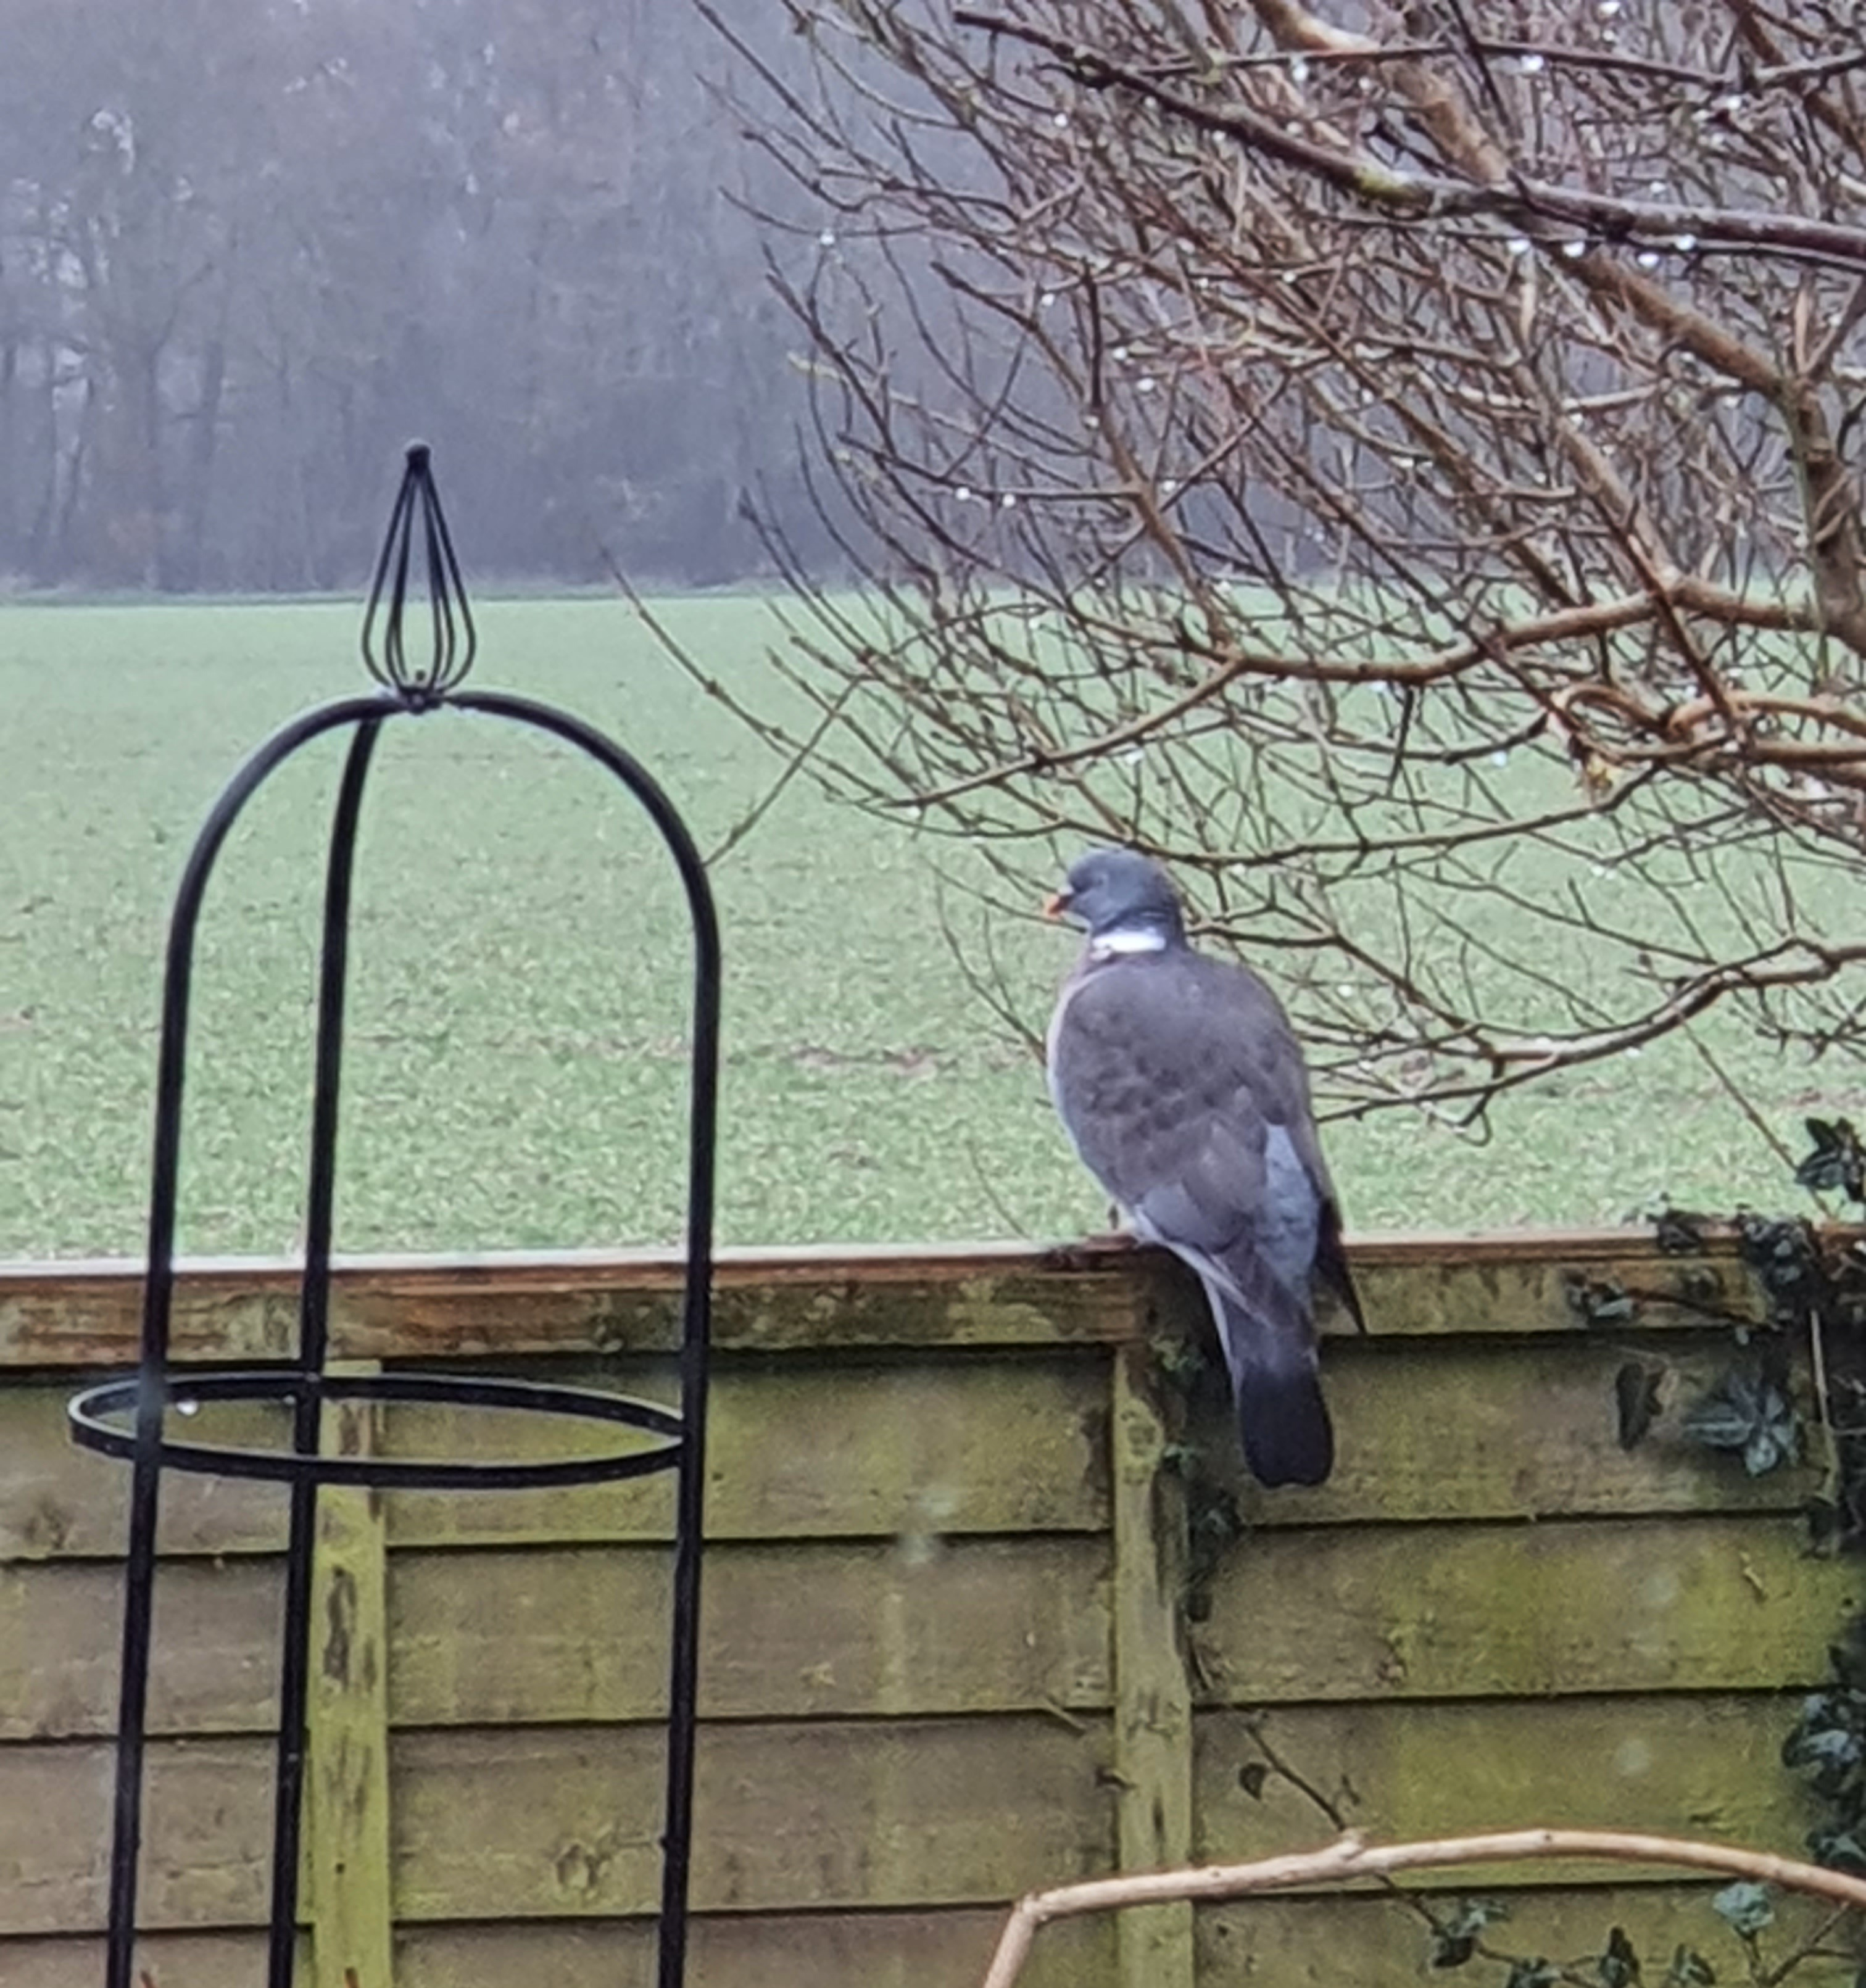 A Wood Pigeon perched on a fence in sleet